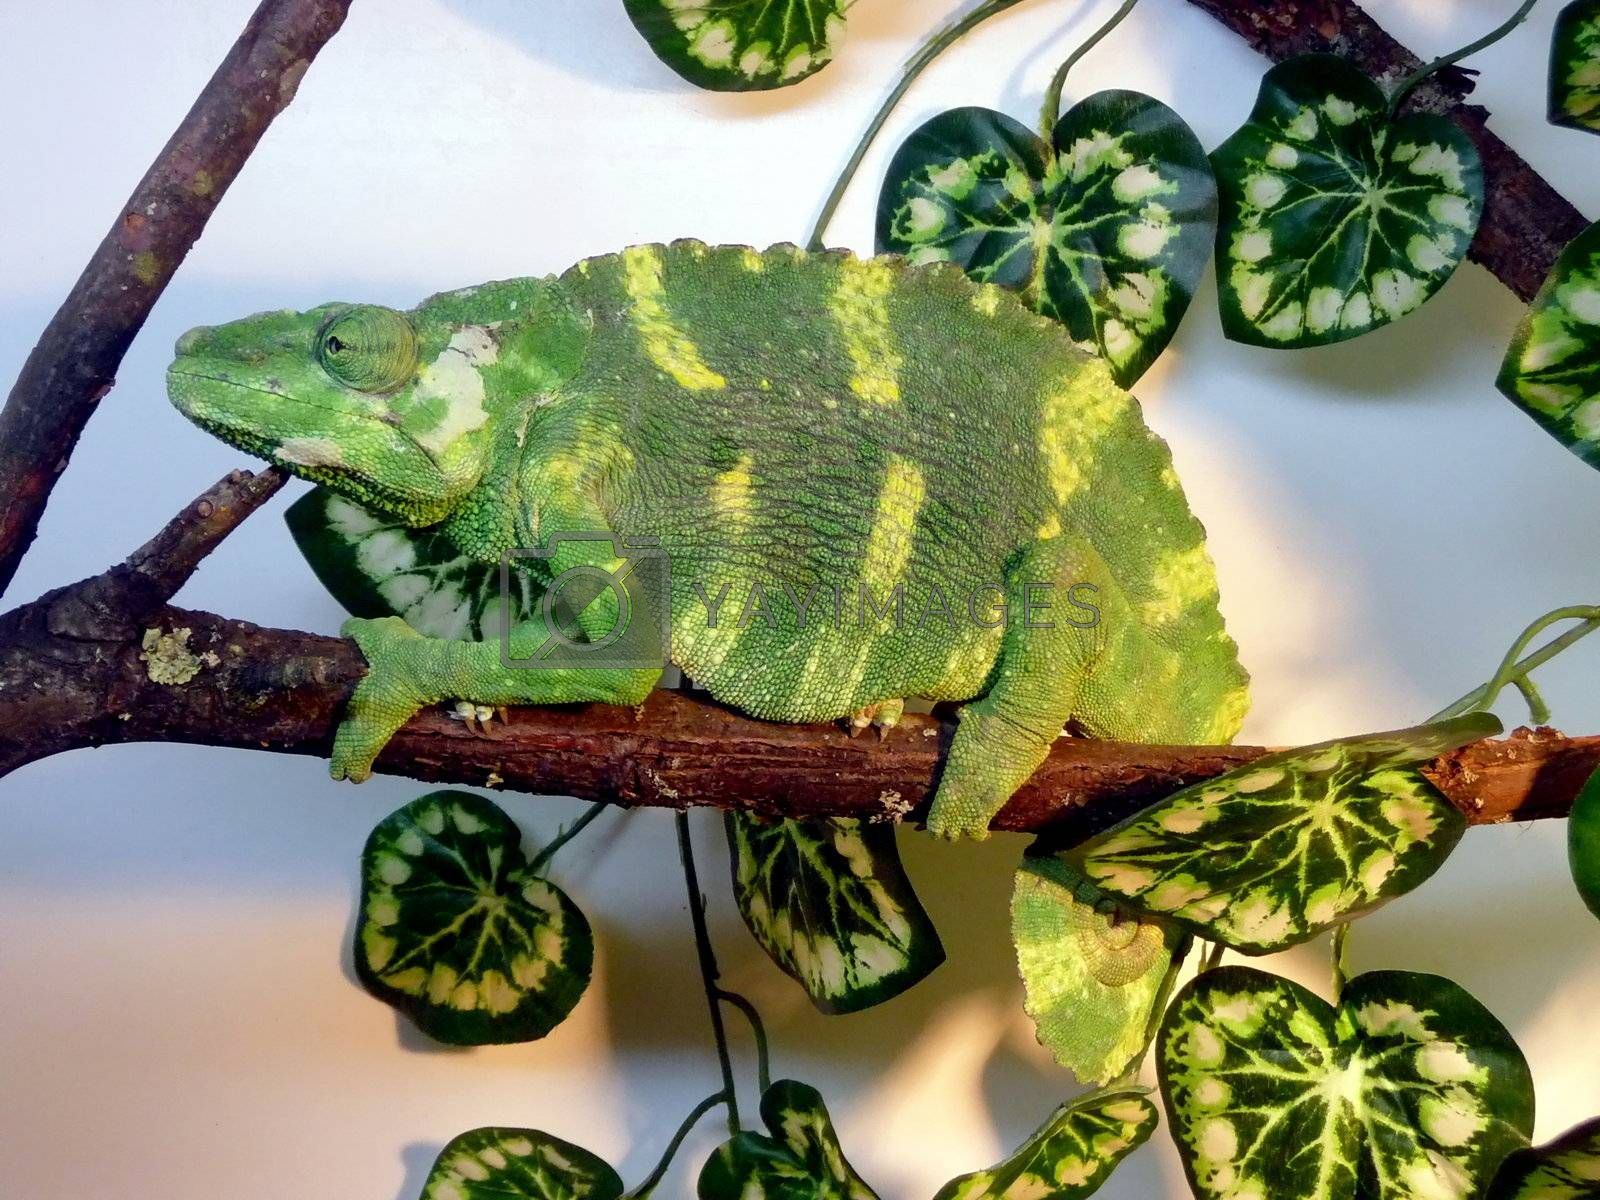 Large striped green chameleon sits on the branch